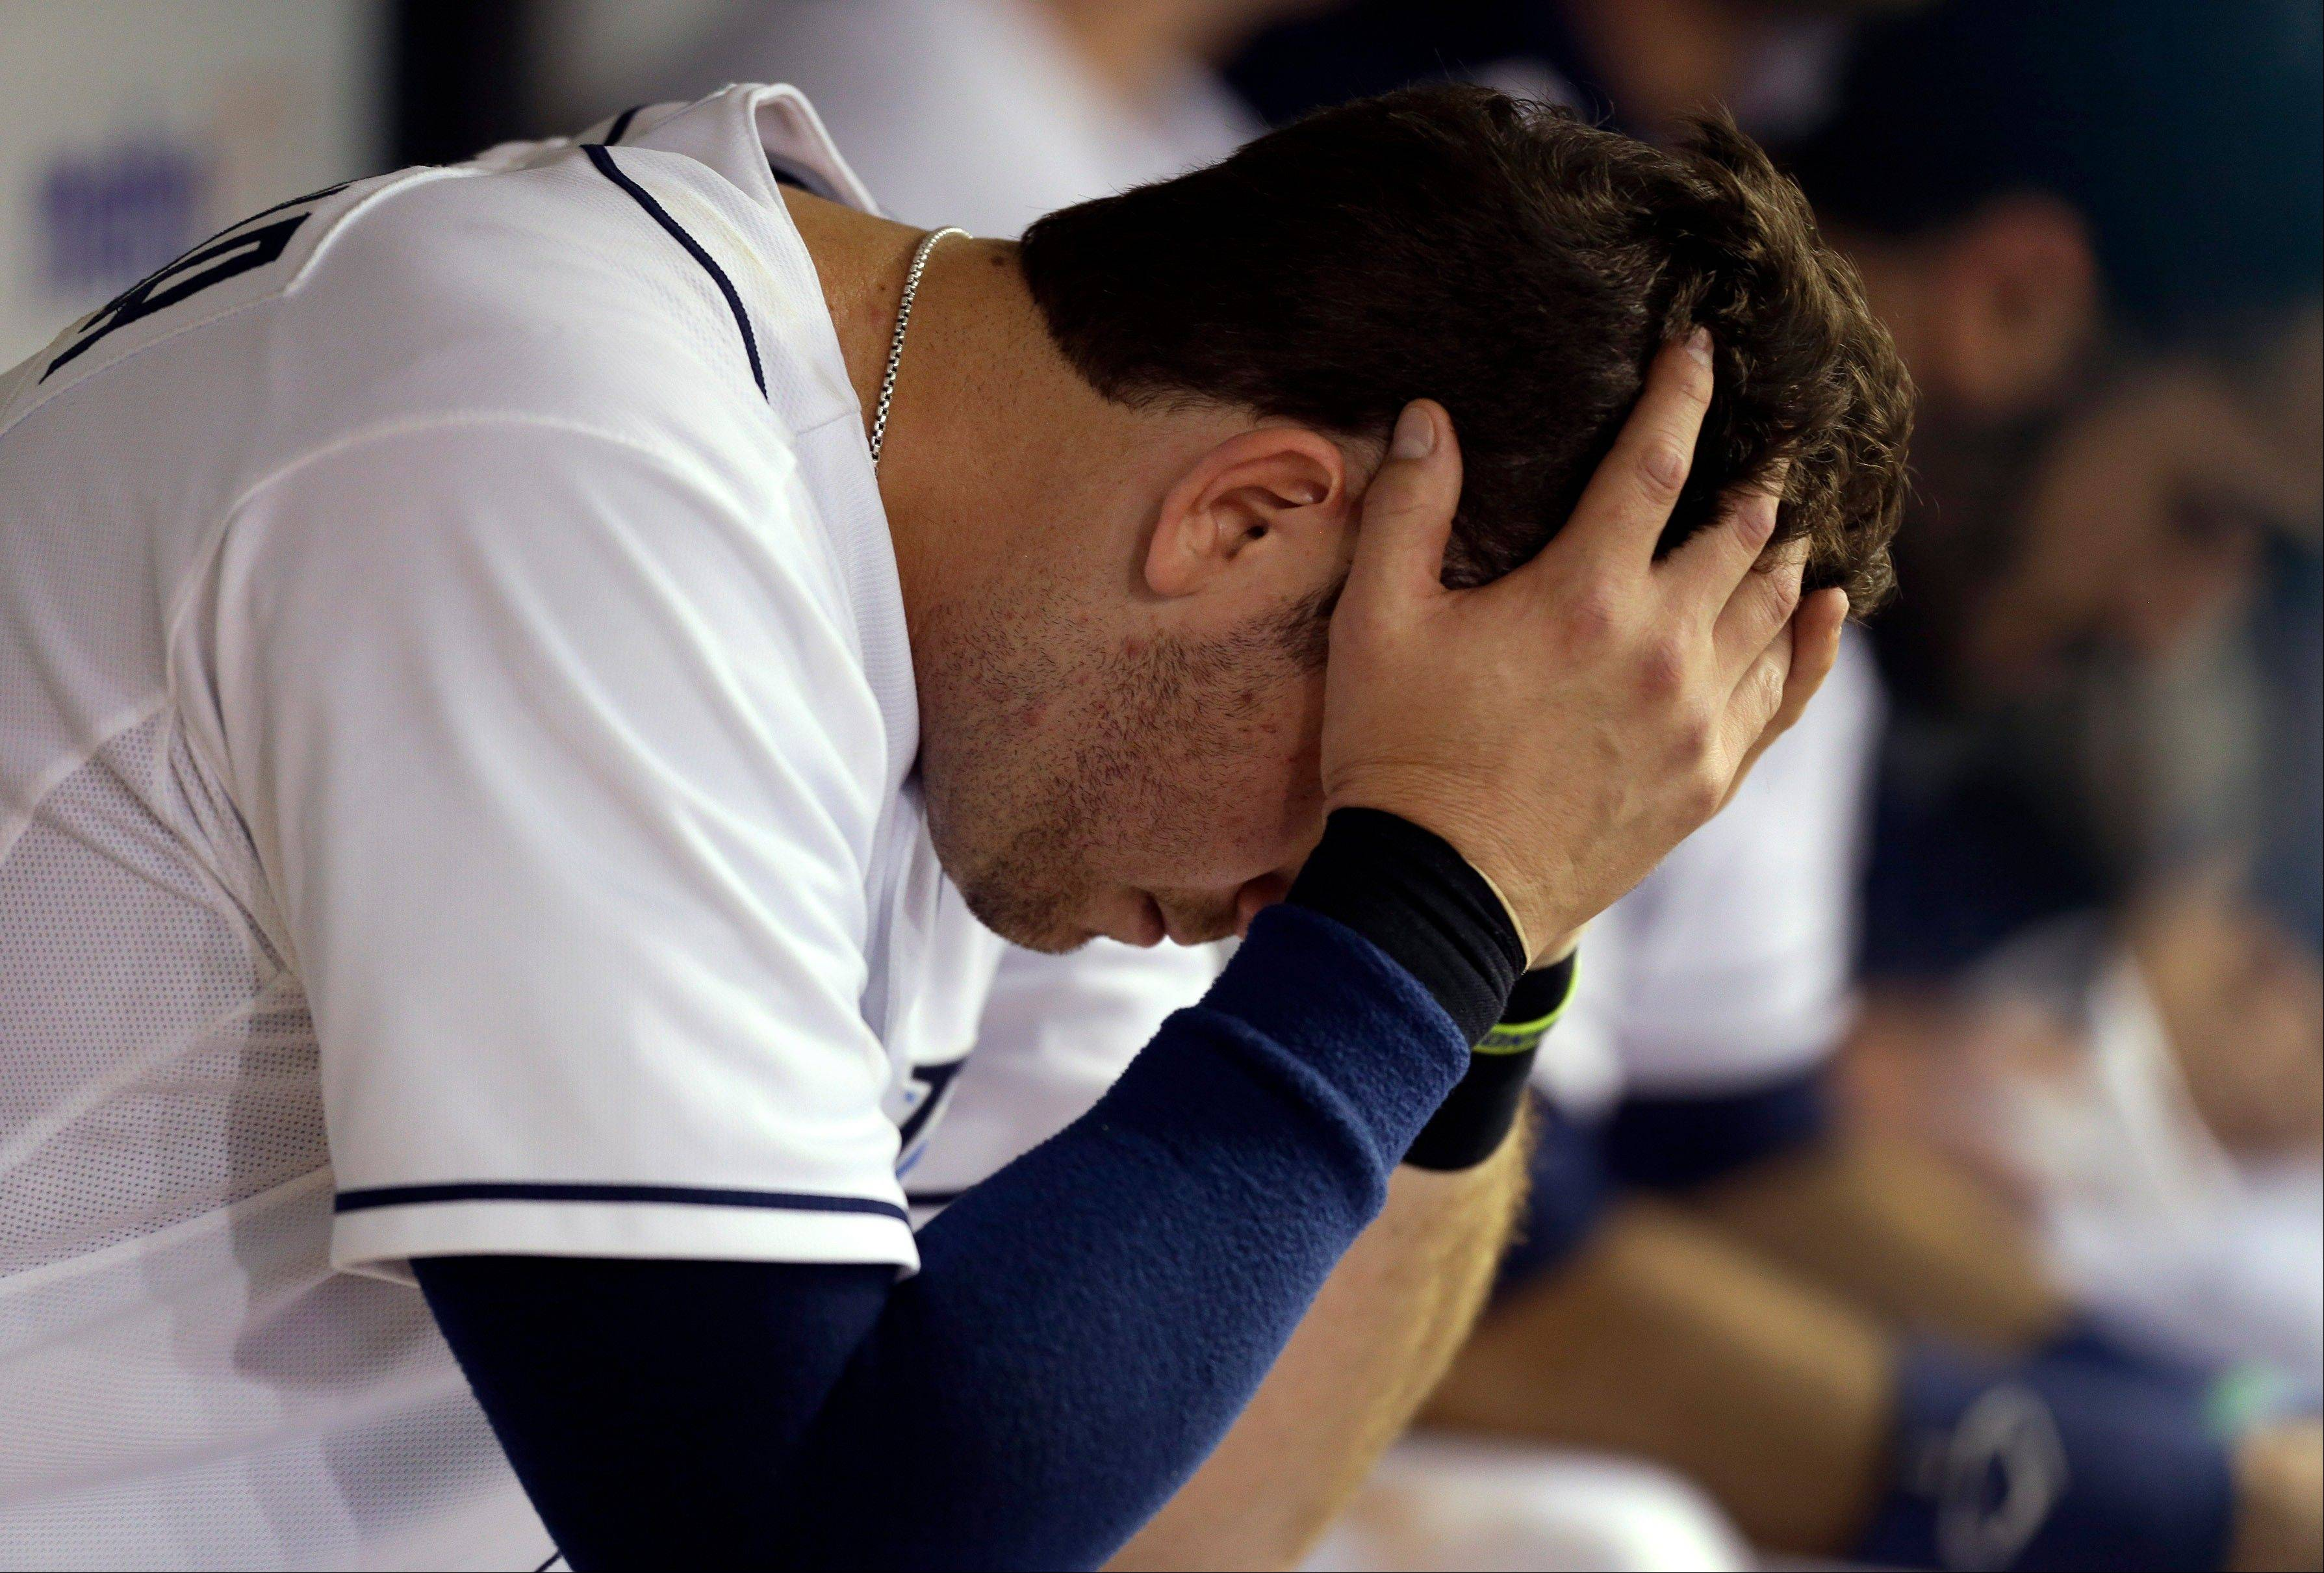 Tampa Bay's Evan Longoria sits in the dugout during the eighth inning of the Rays' 7-5 loss to the Boston Red Sox on Tuesday at home.